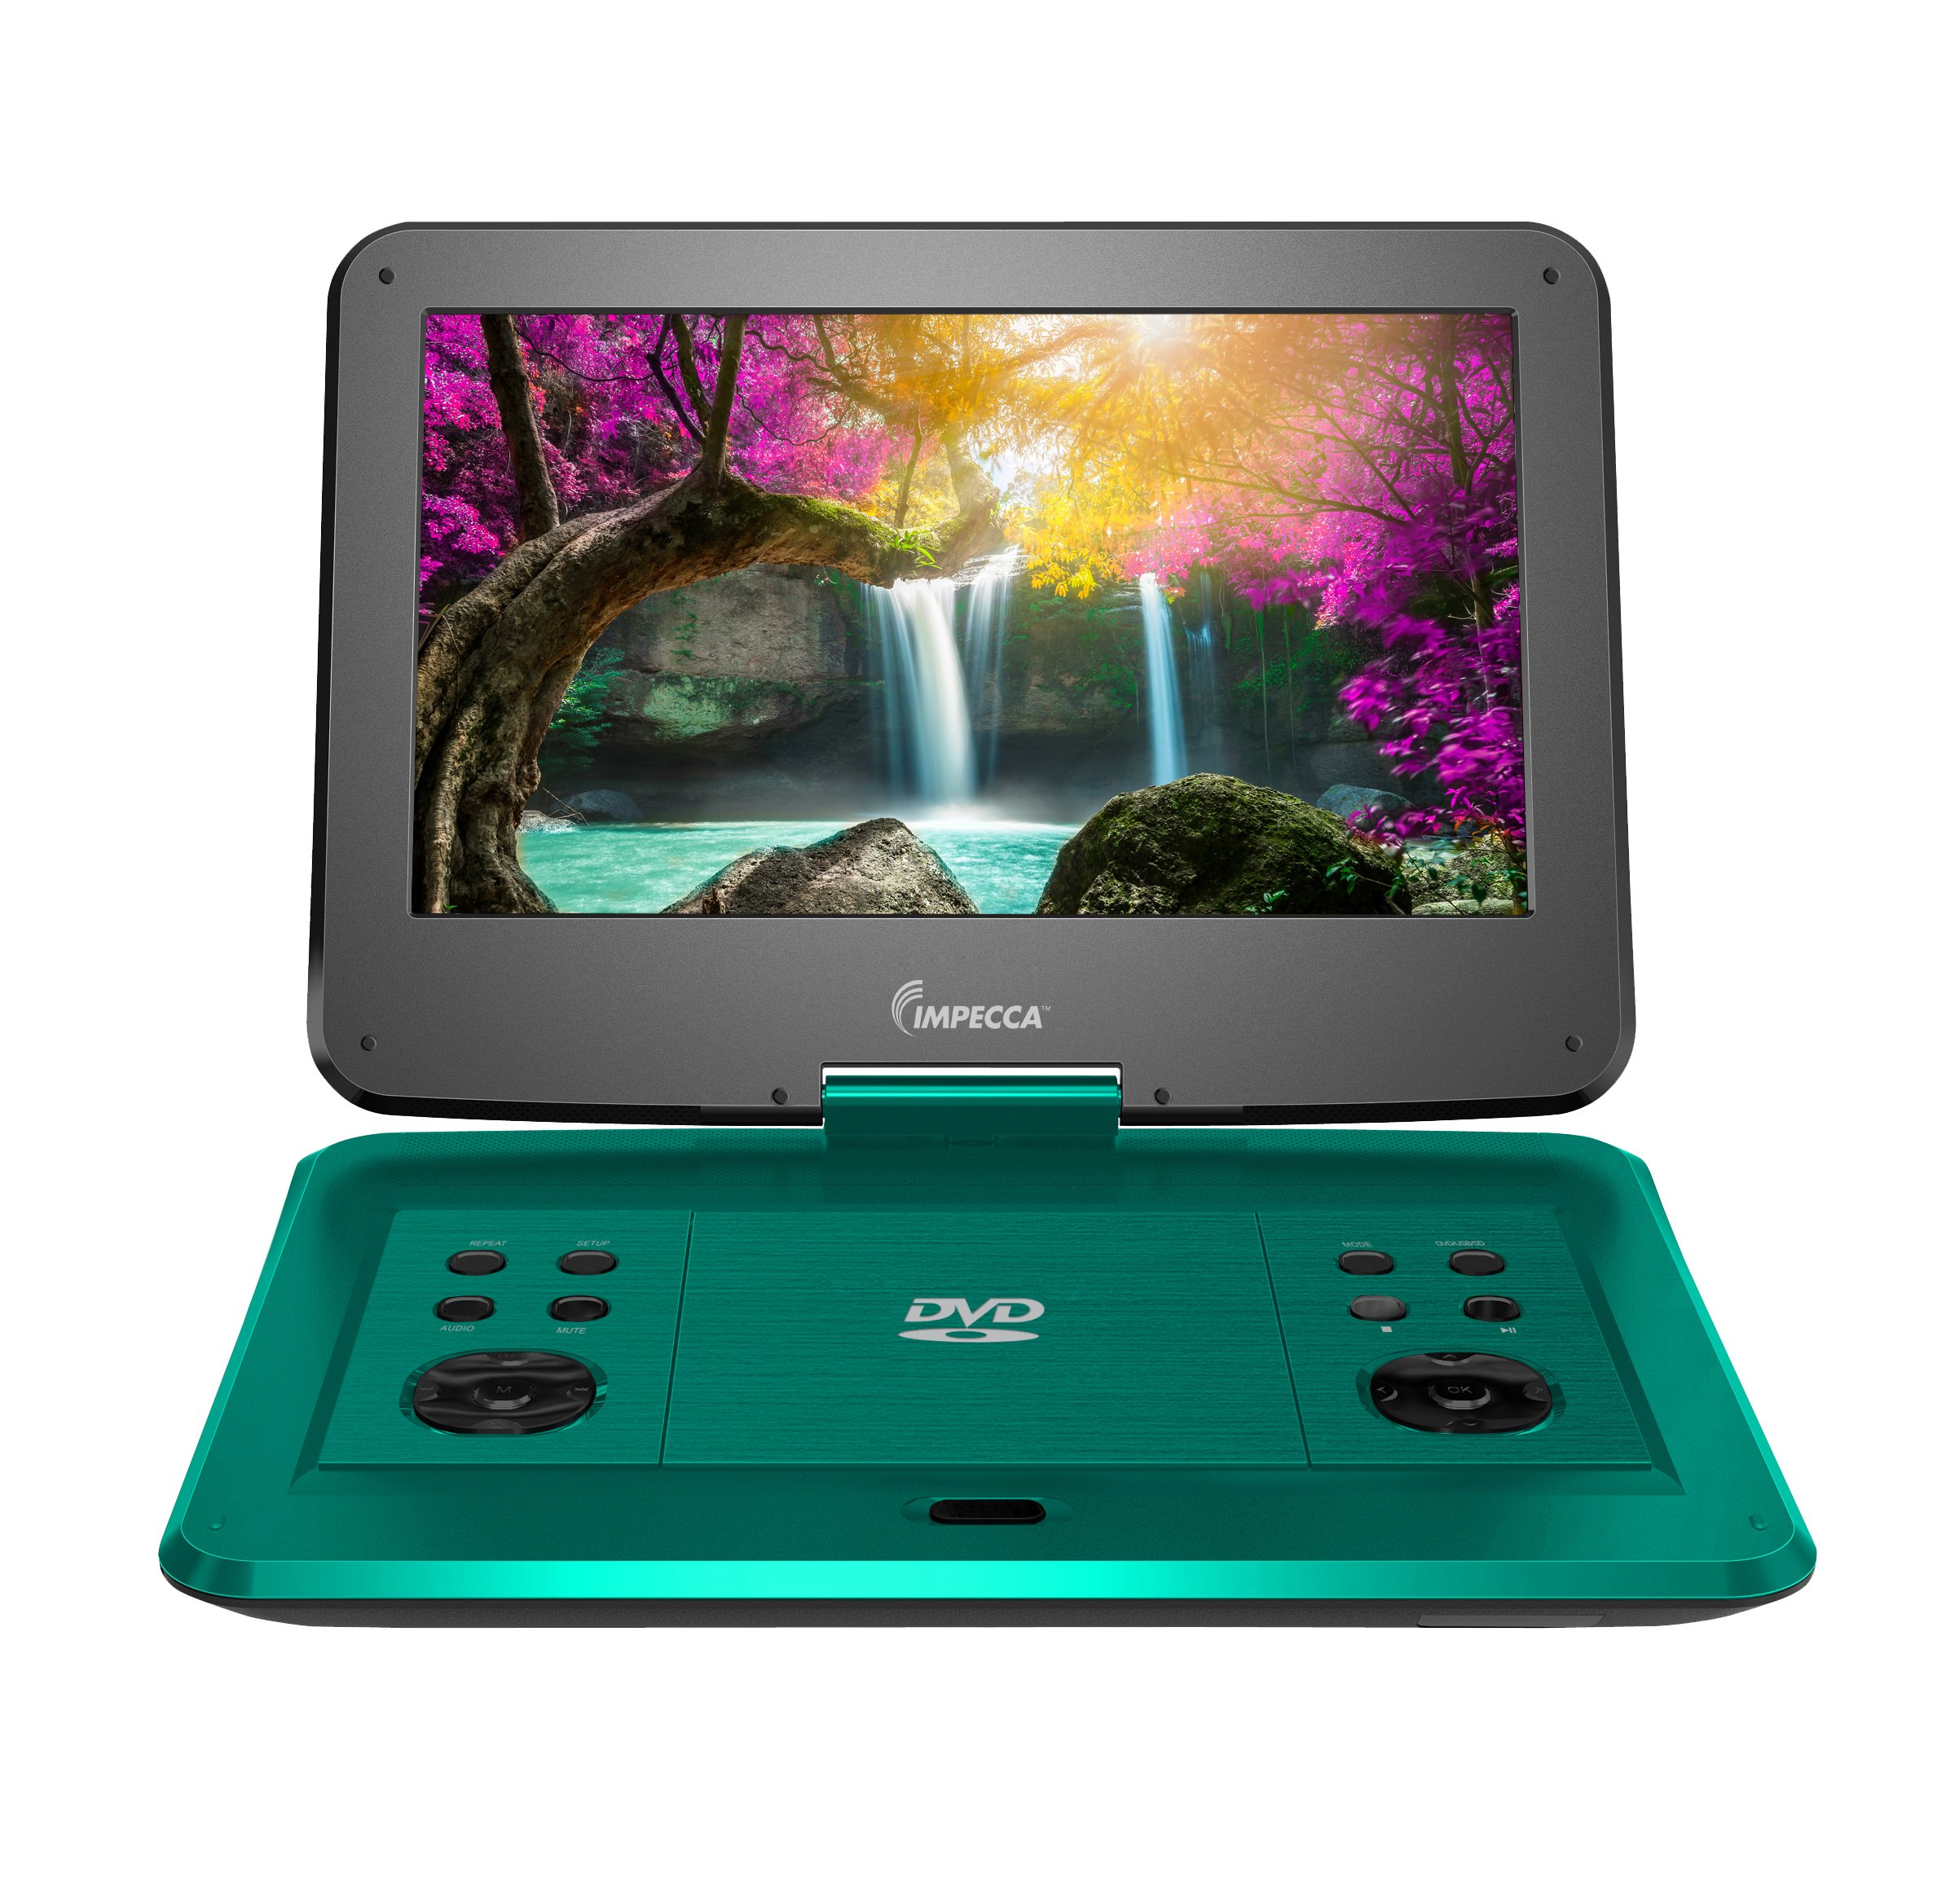 Impecca 13.3 Inch Portable DVD Player, Swivel Screen, 5 Hour Rechargeable Battery, with USB/SD Card Reader, And Deluxe Travel Bag, Teal (DVP1330T)